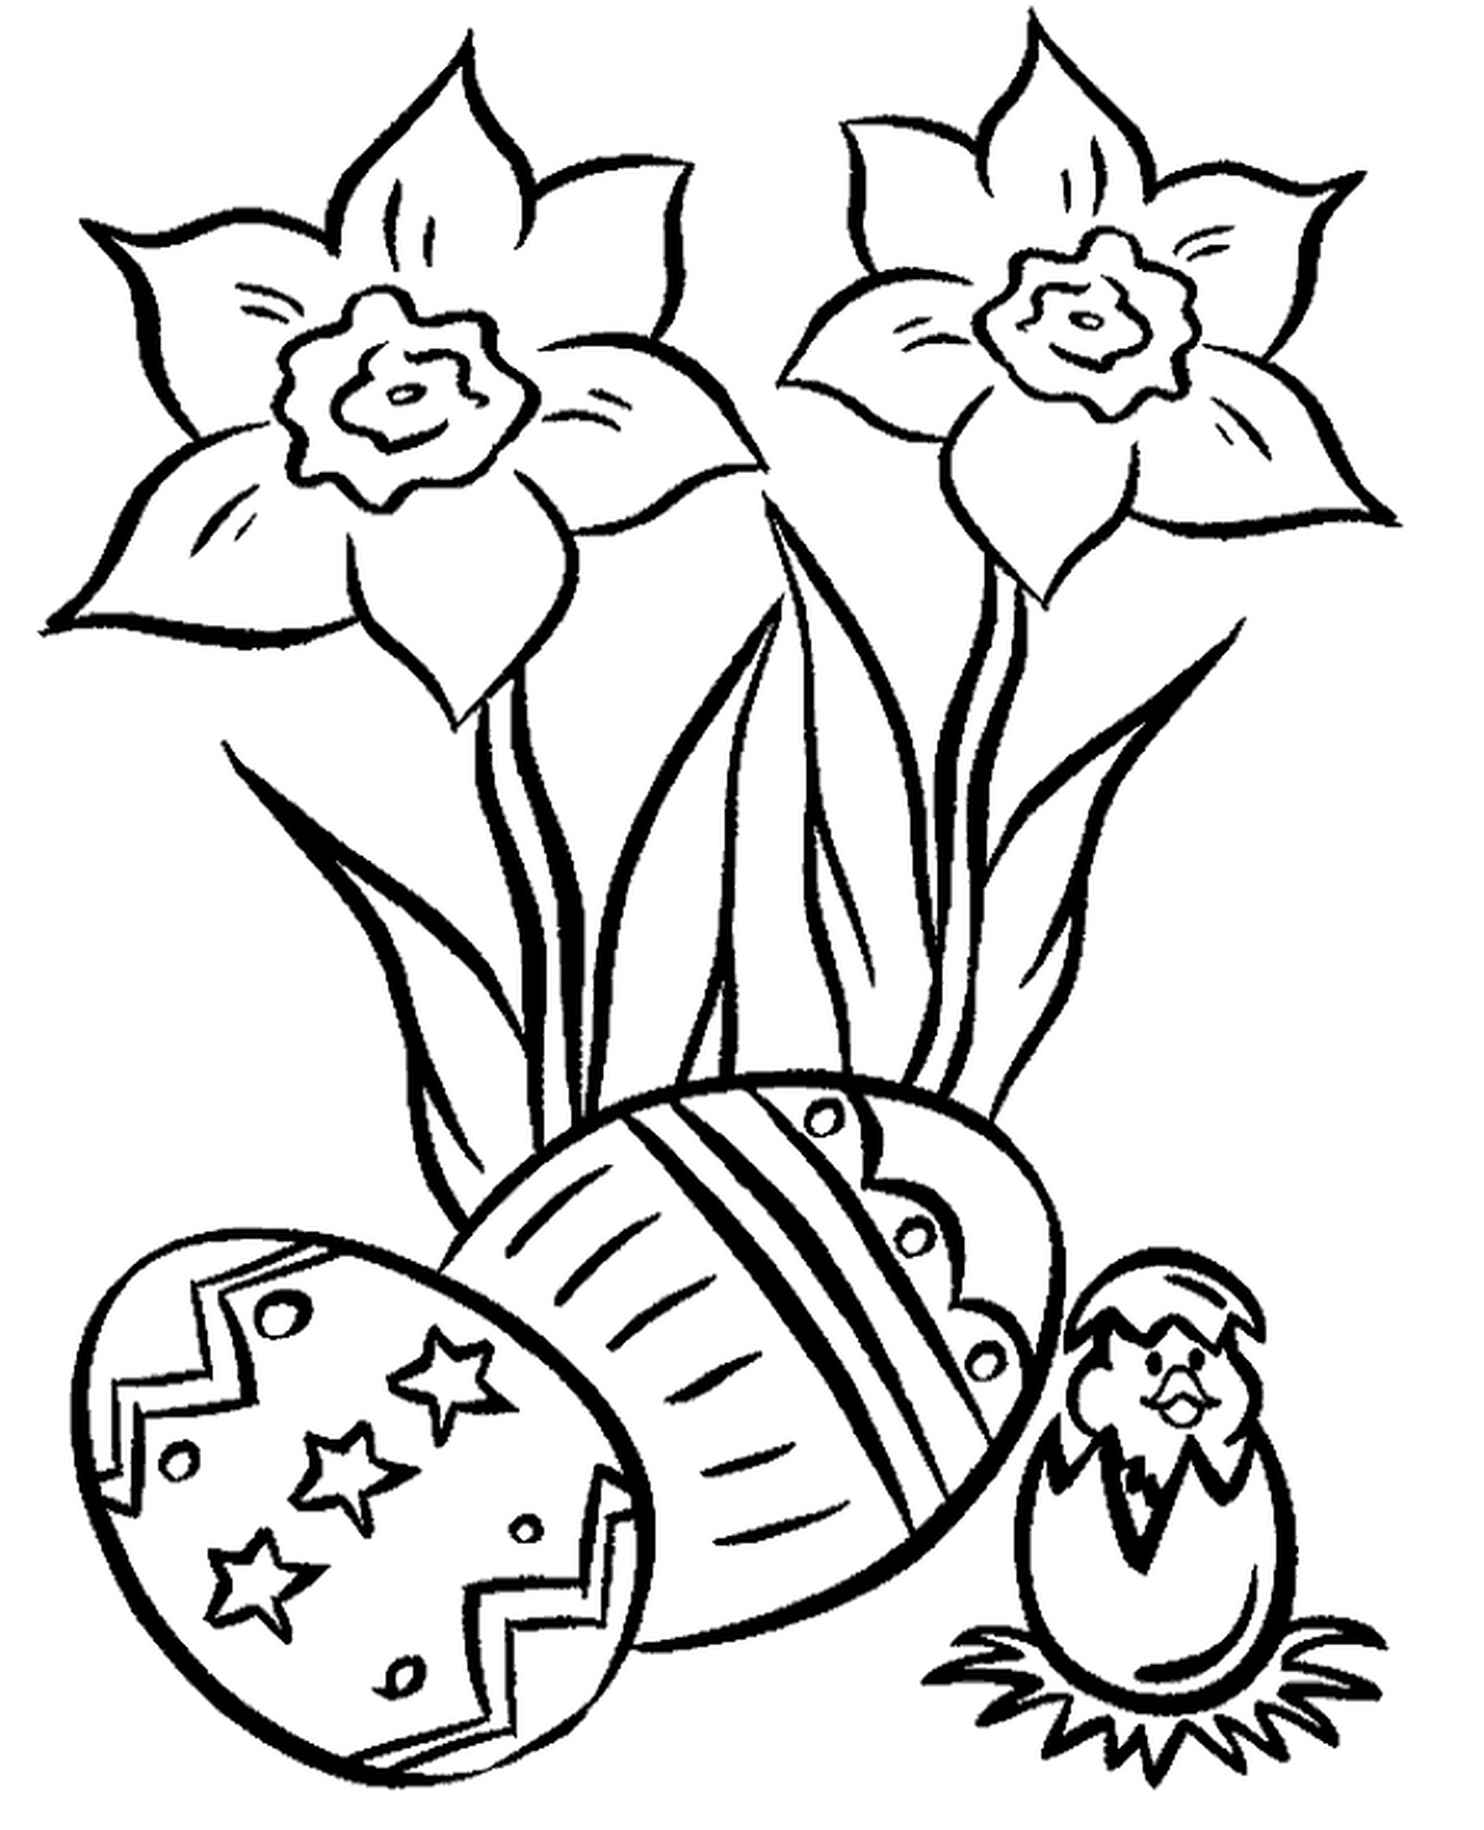 Easter Eggs, Flowers And A Newborn Chicken